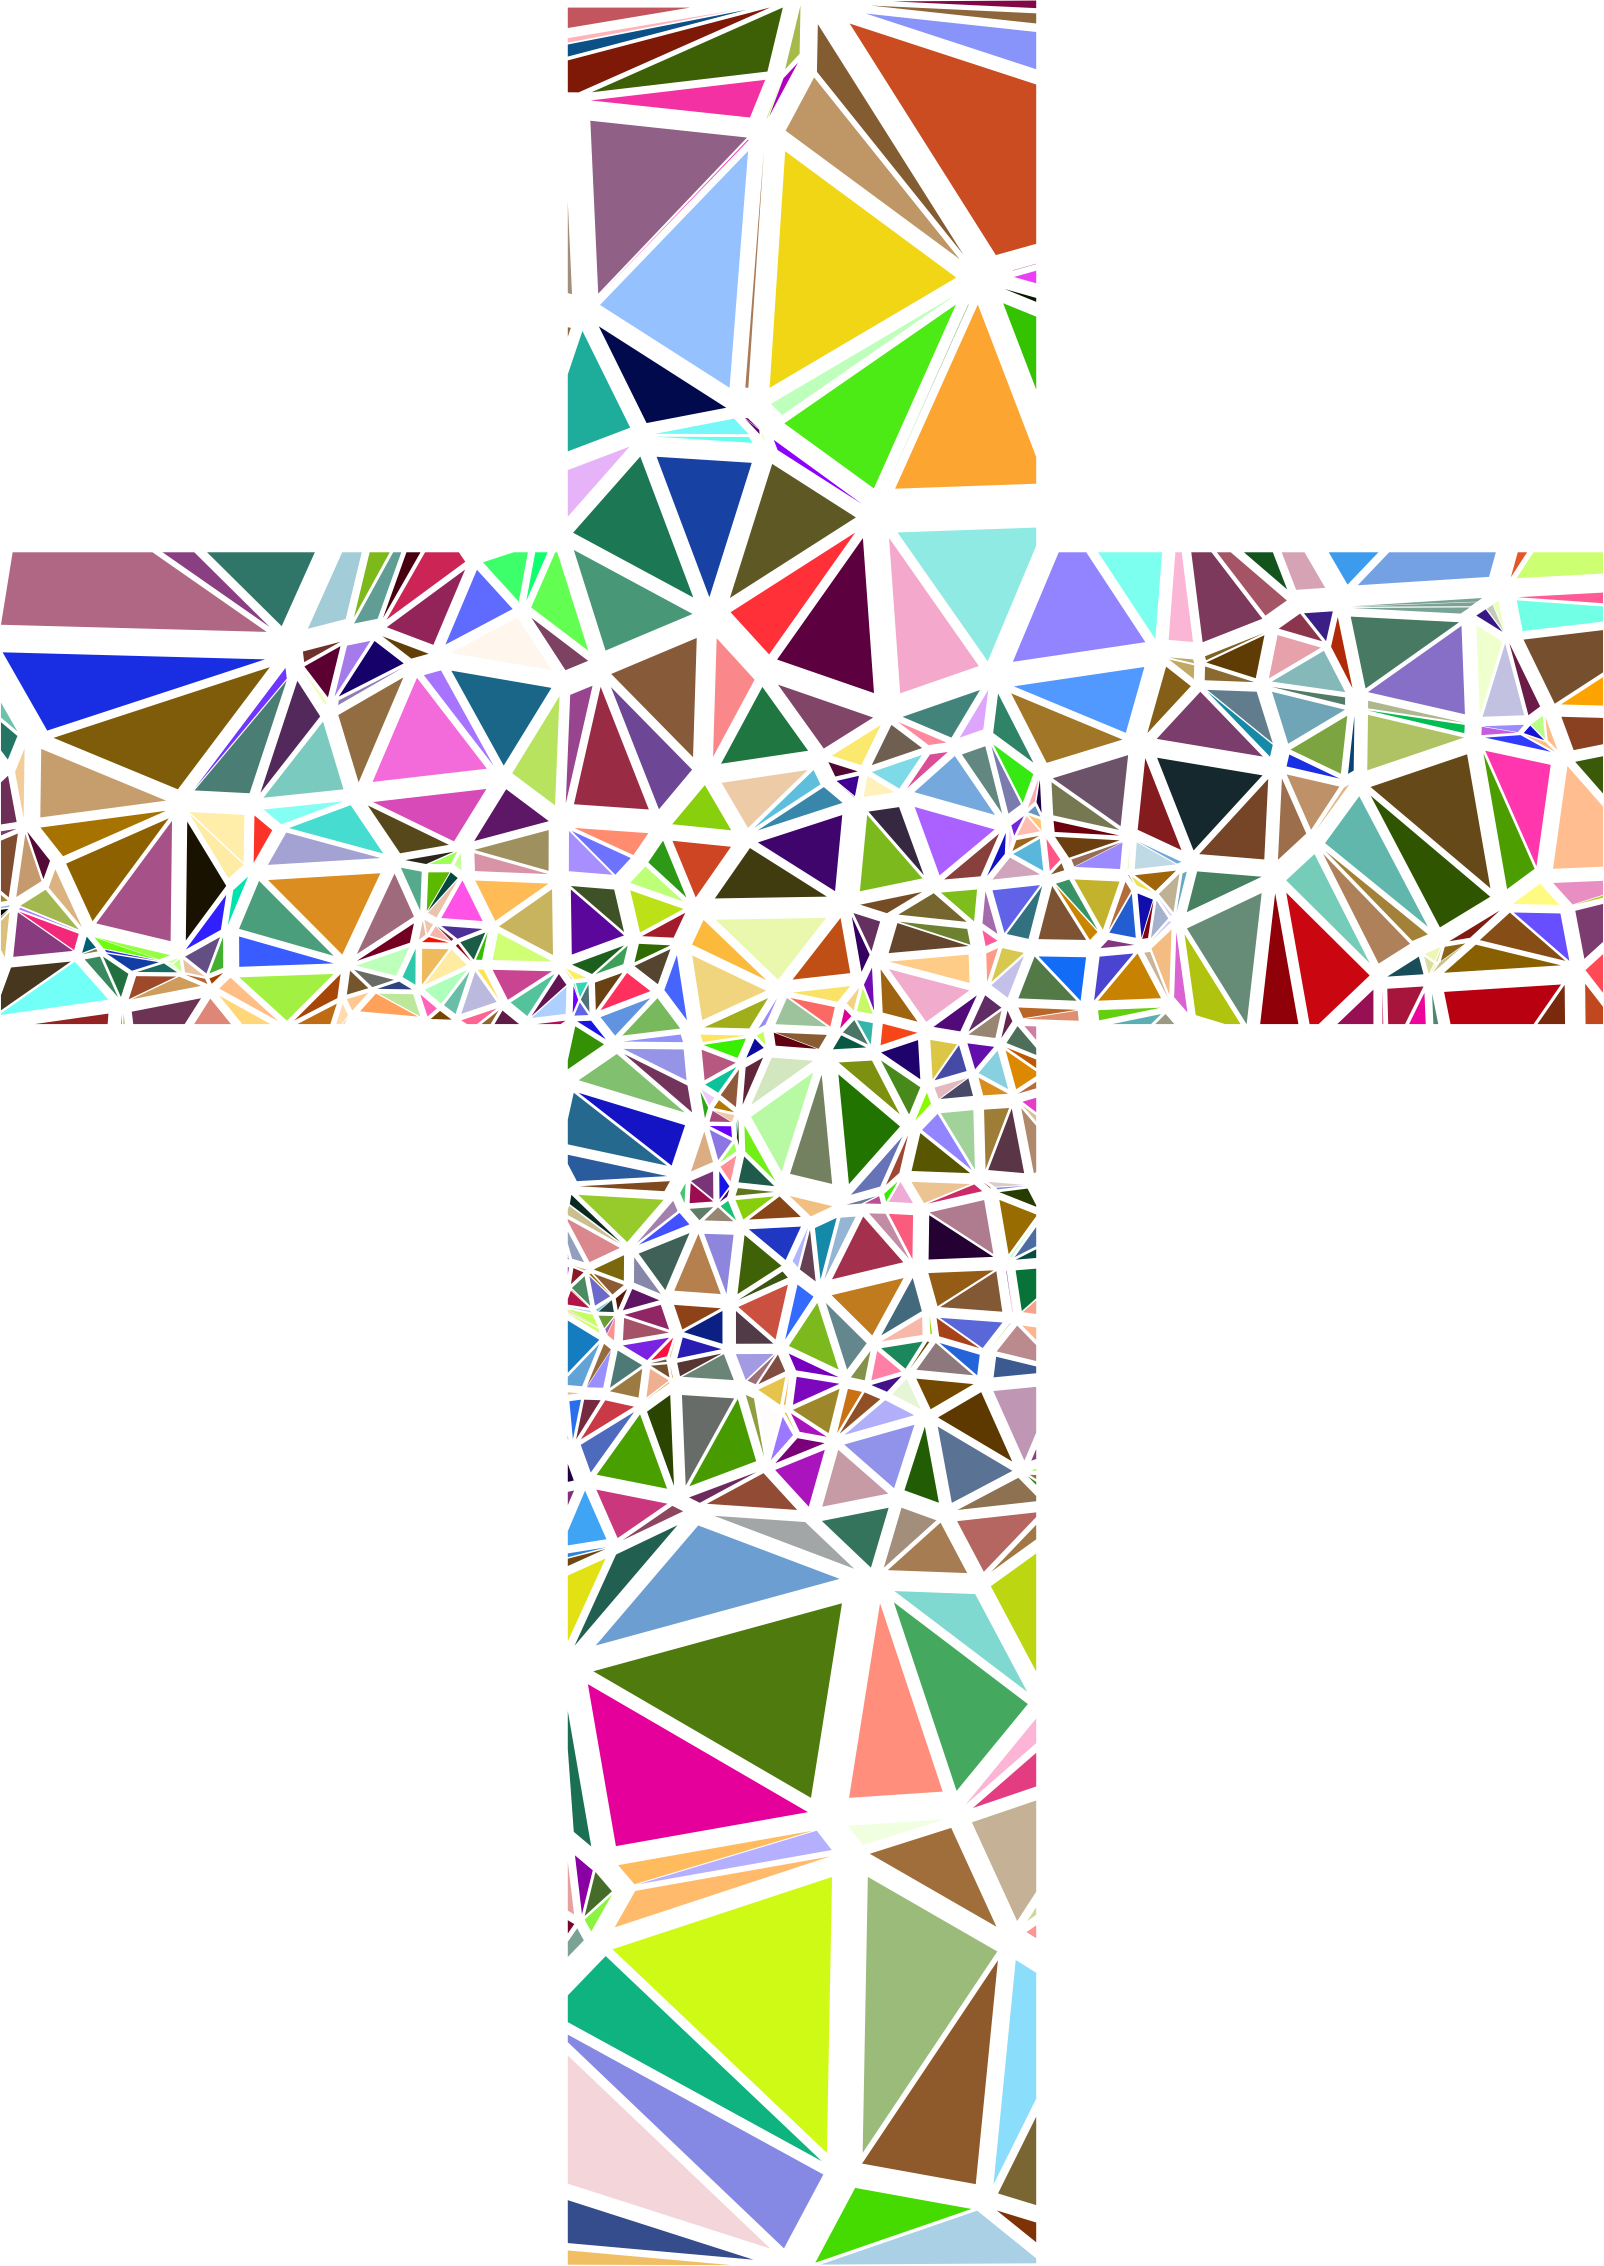 Cross clipart stained glass. Colorful collection low poly